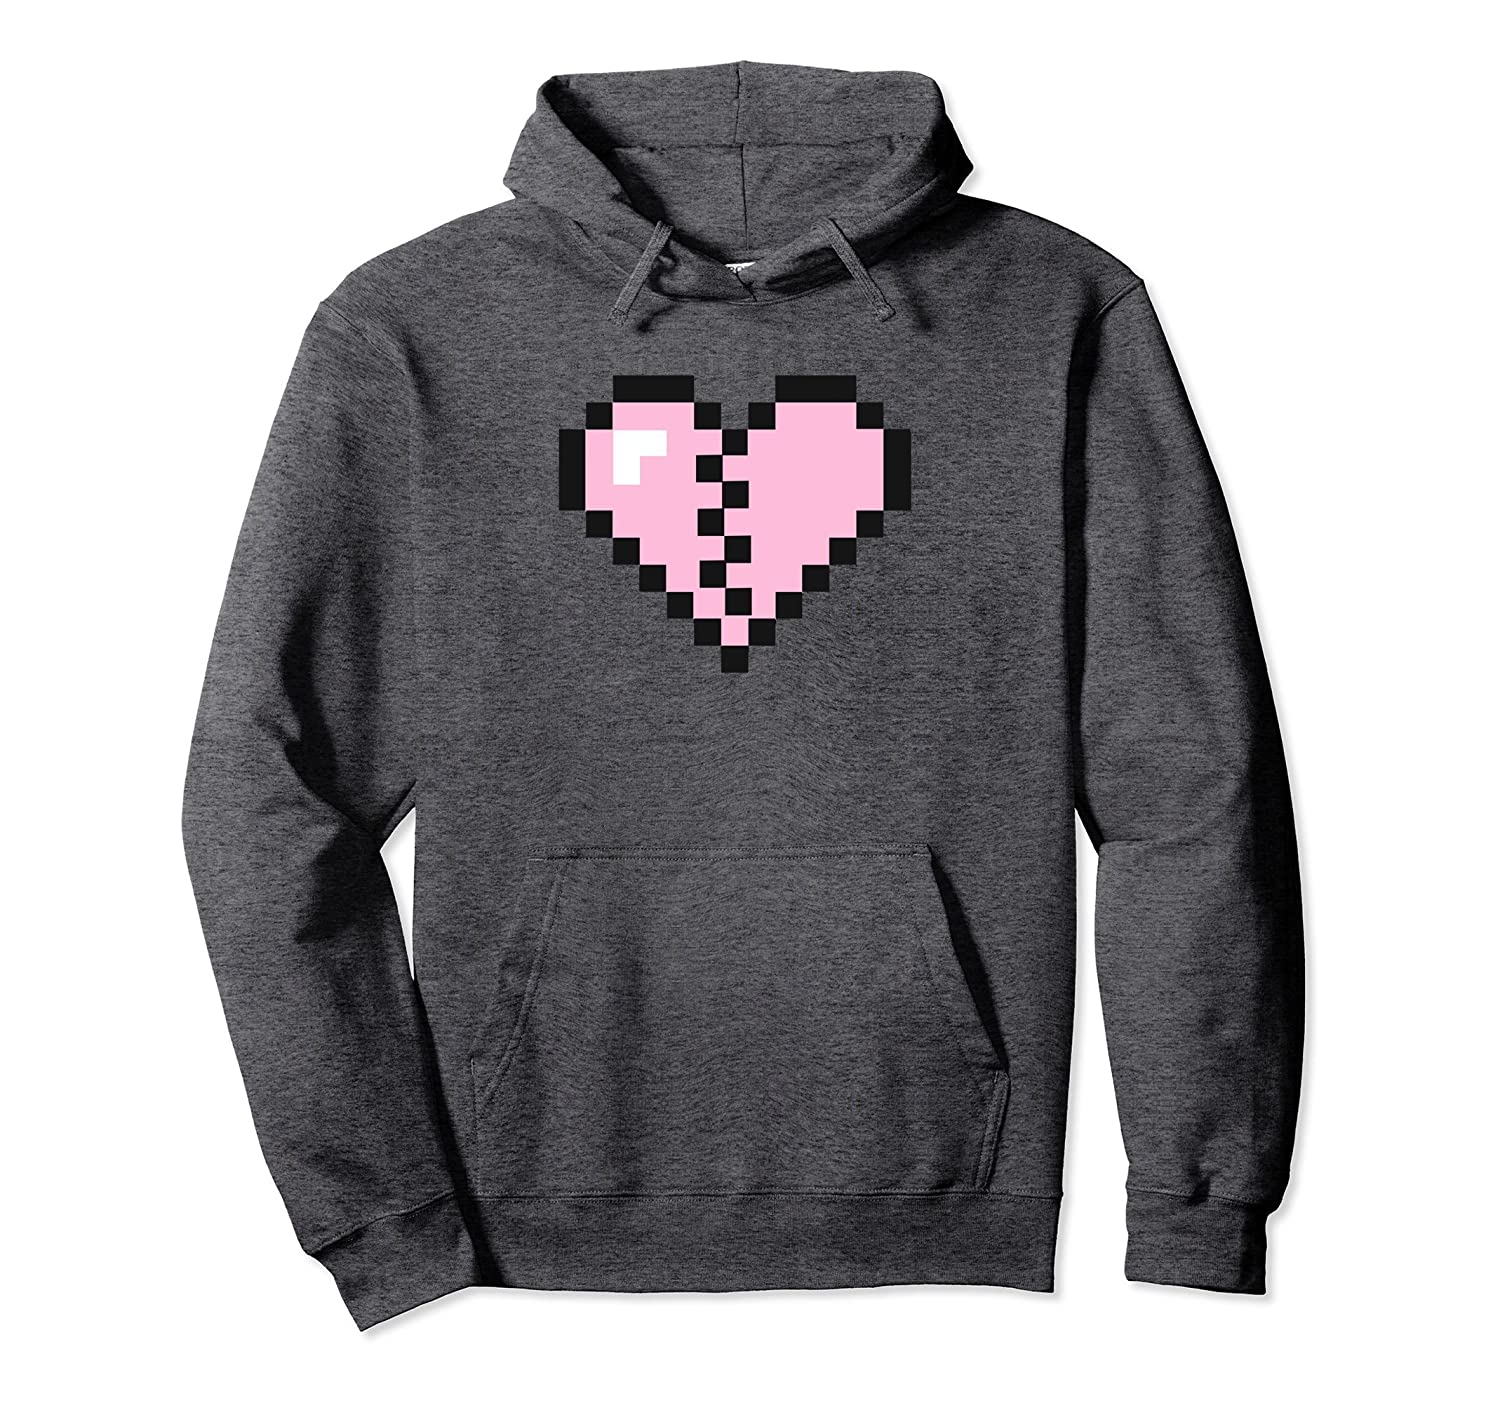 Aesthetic Clothing For Girls, Pastel Goth Hoodies for Women-mt